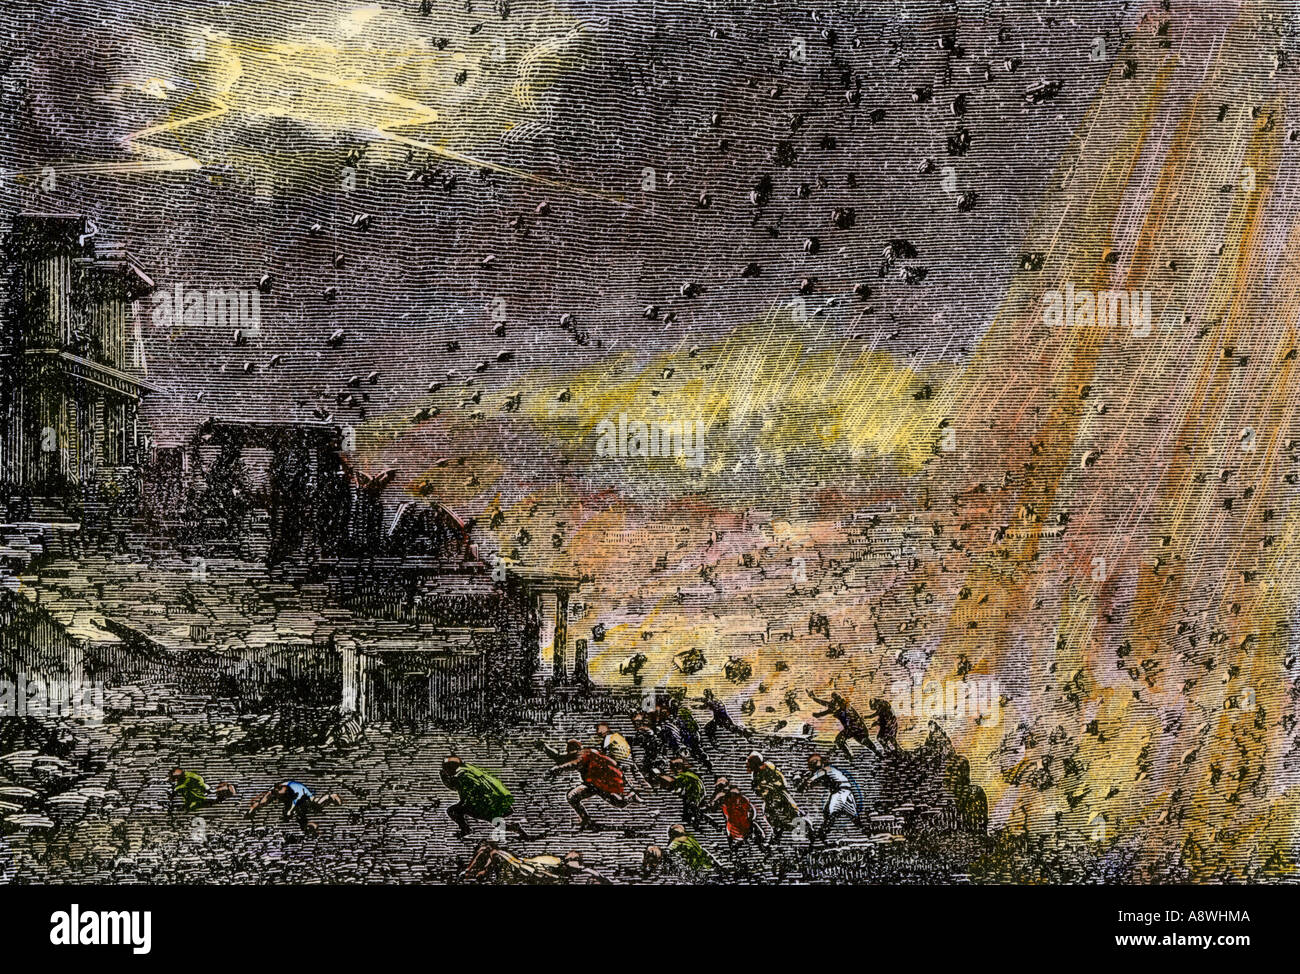 Destruction Of The Ancient City Pompeii By Mount Vesuvius 79 AD Hand Colored Woodcut